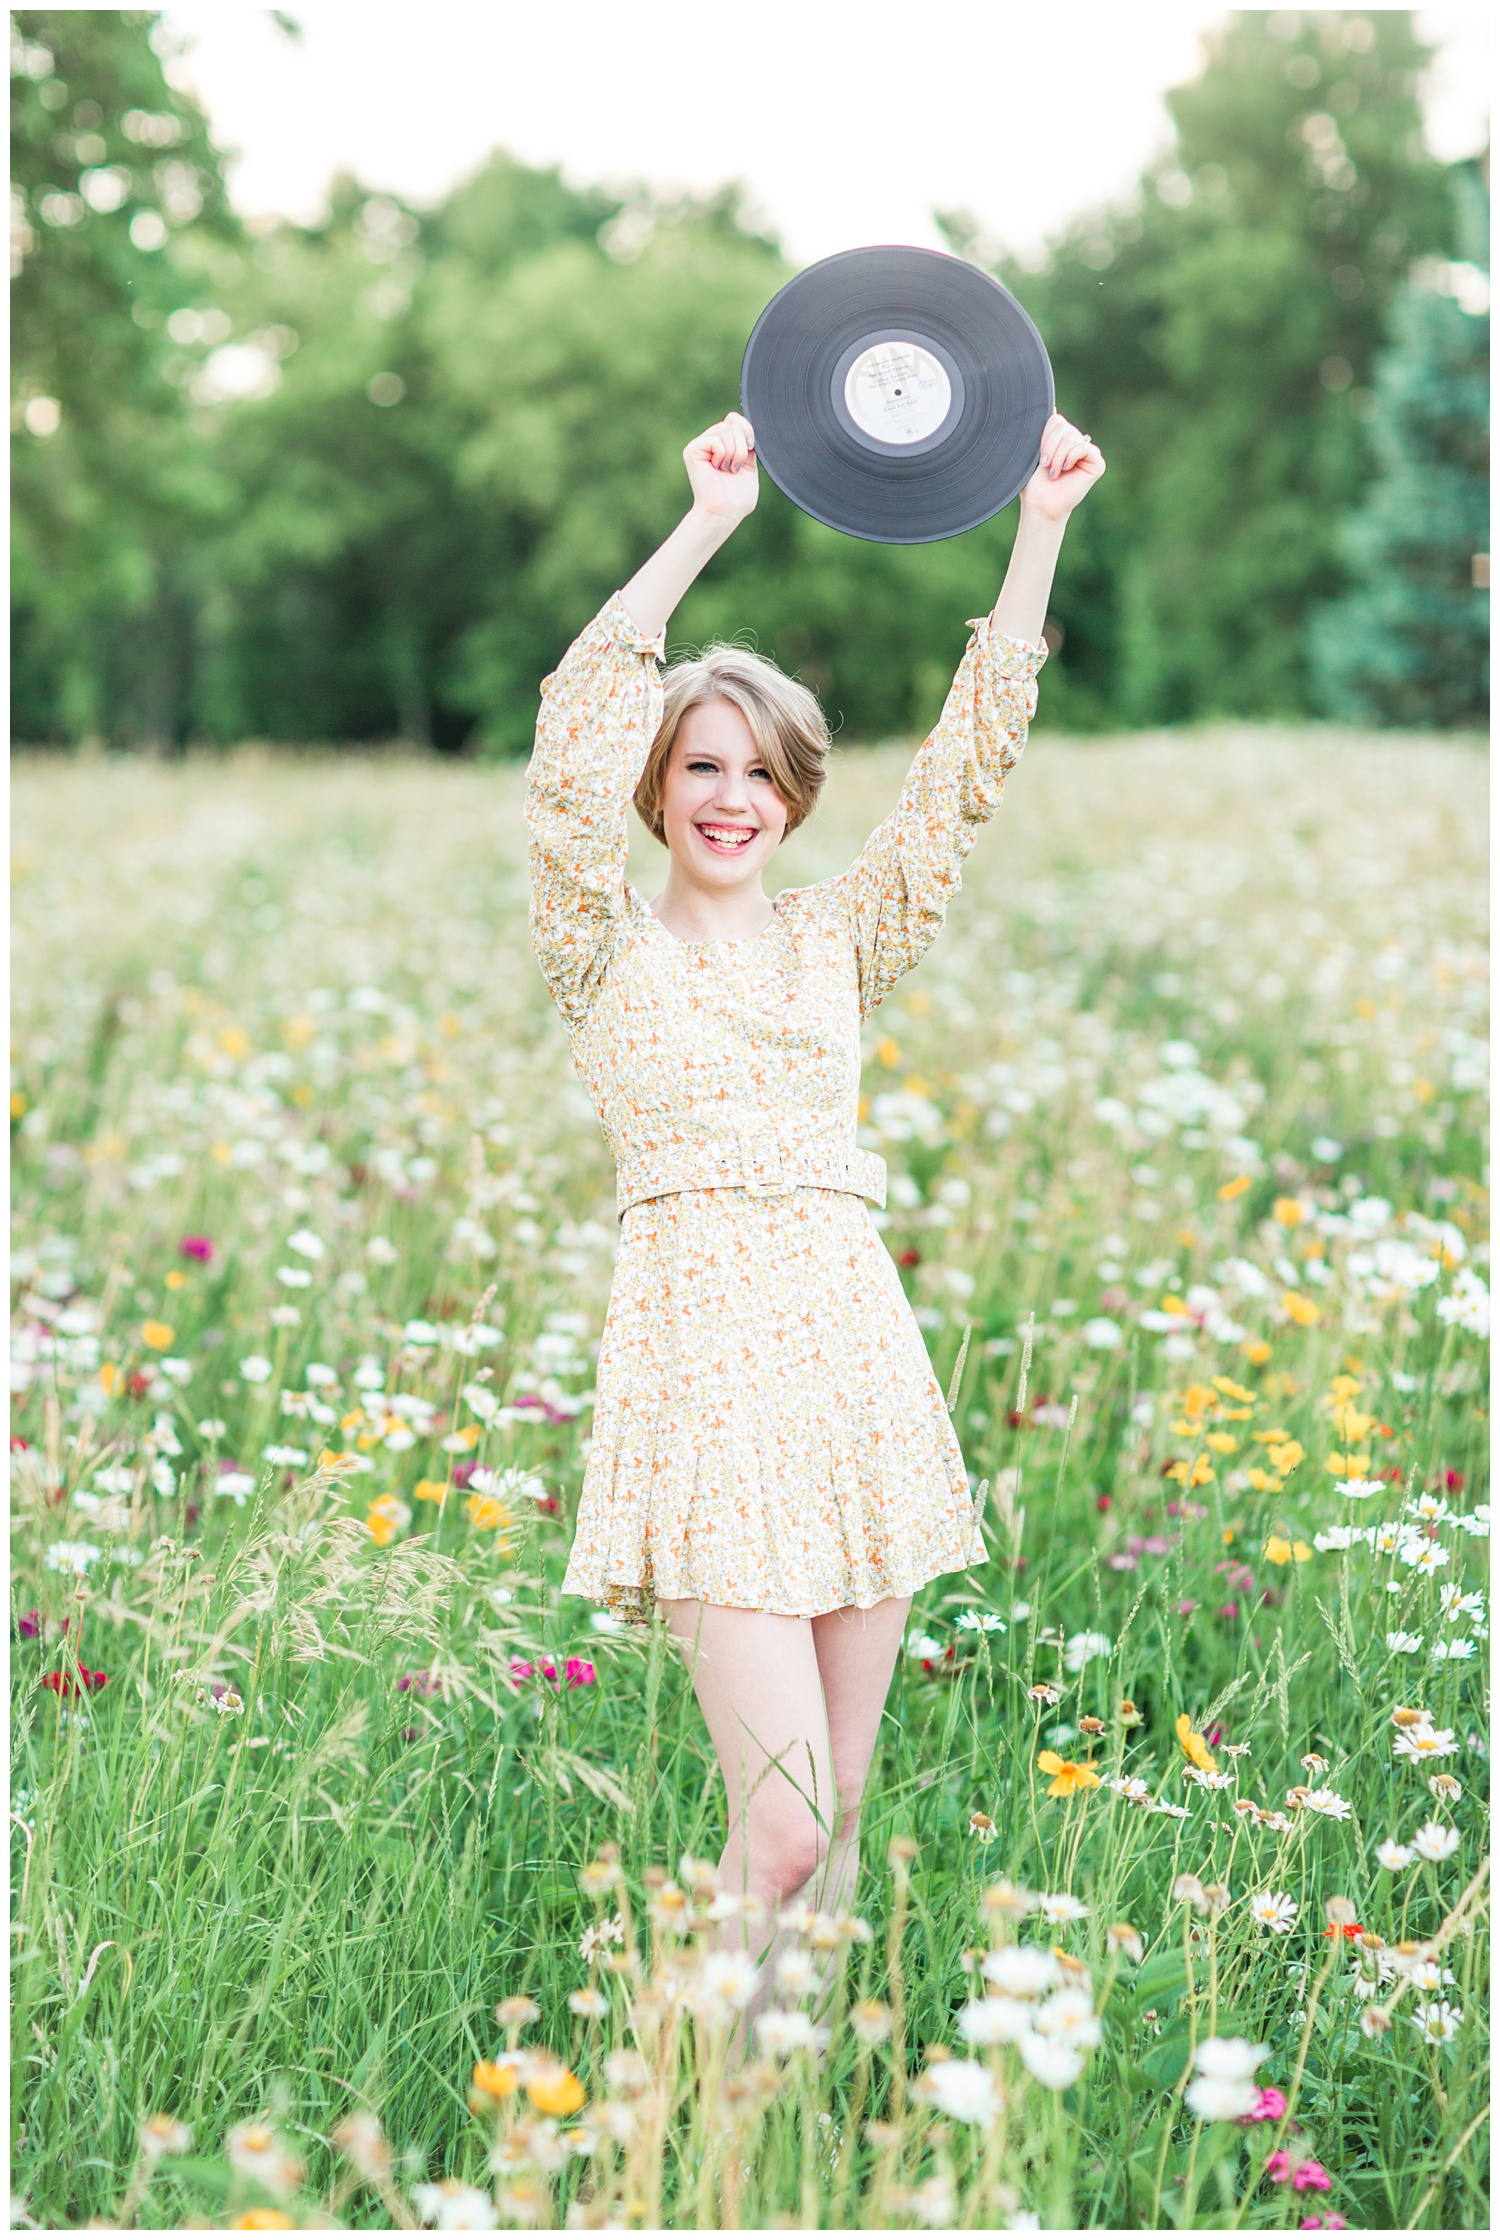 Vintage, film inspired, 70s retro styled senior holding a vinyl record in a flower field. | CB Studio